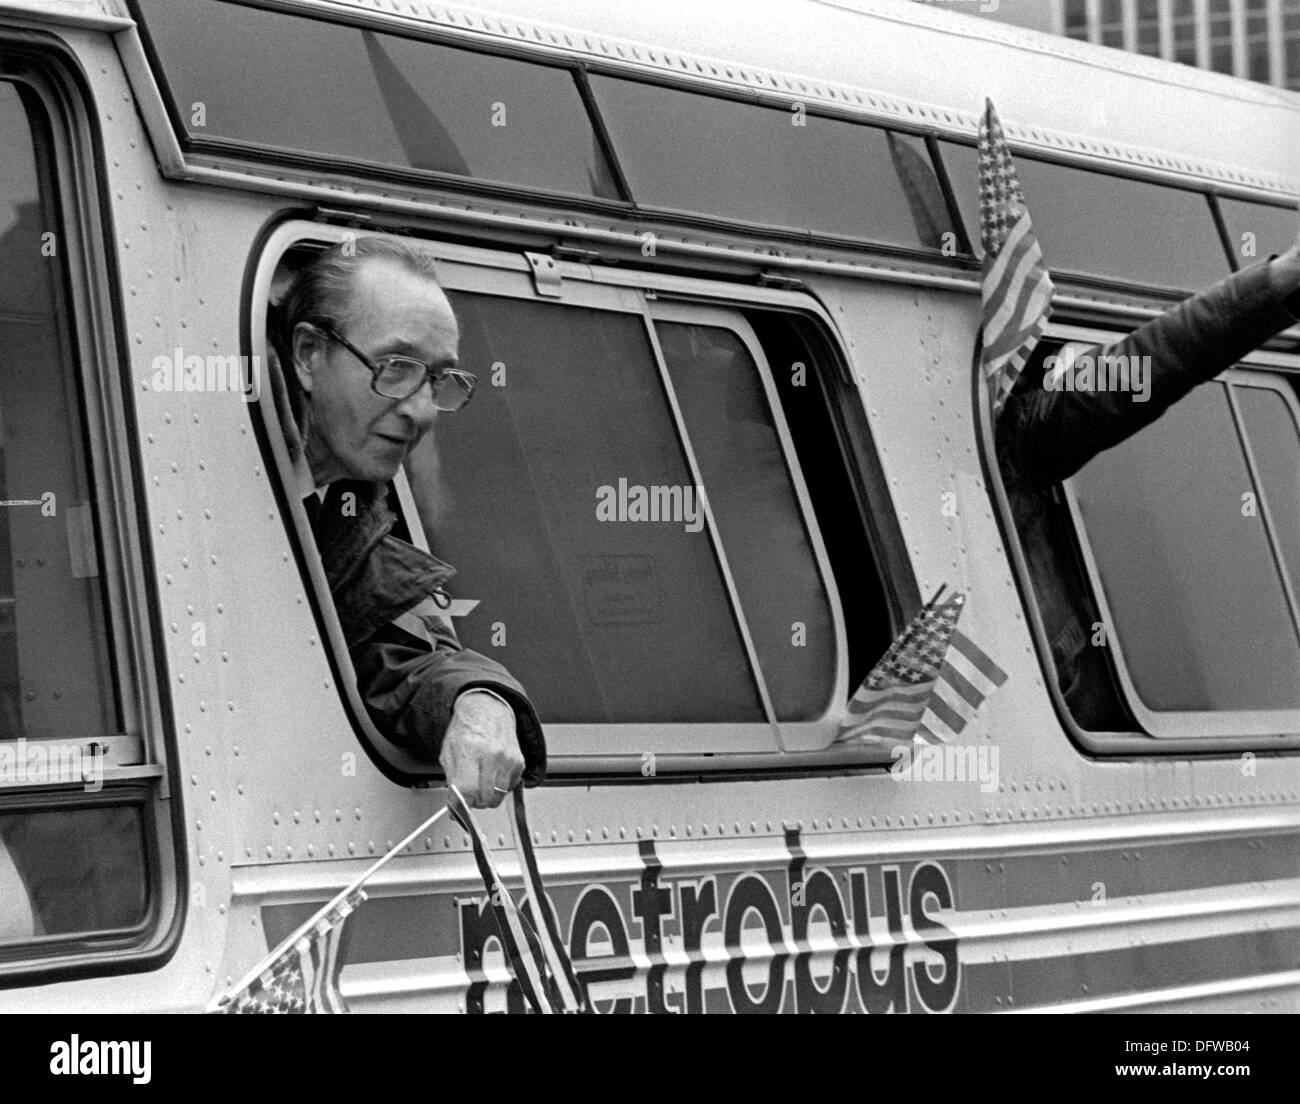 A former American hostage held by Iran waves from a buses during a welcome home parade along Pennsylvania Avenue - Stock Image